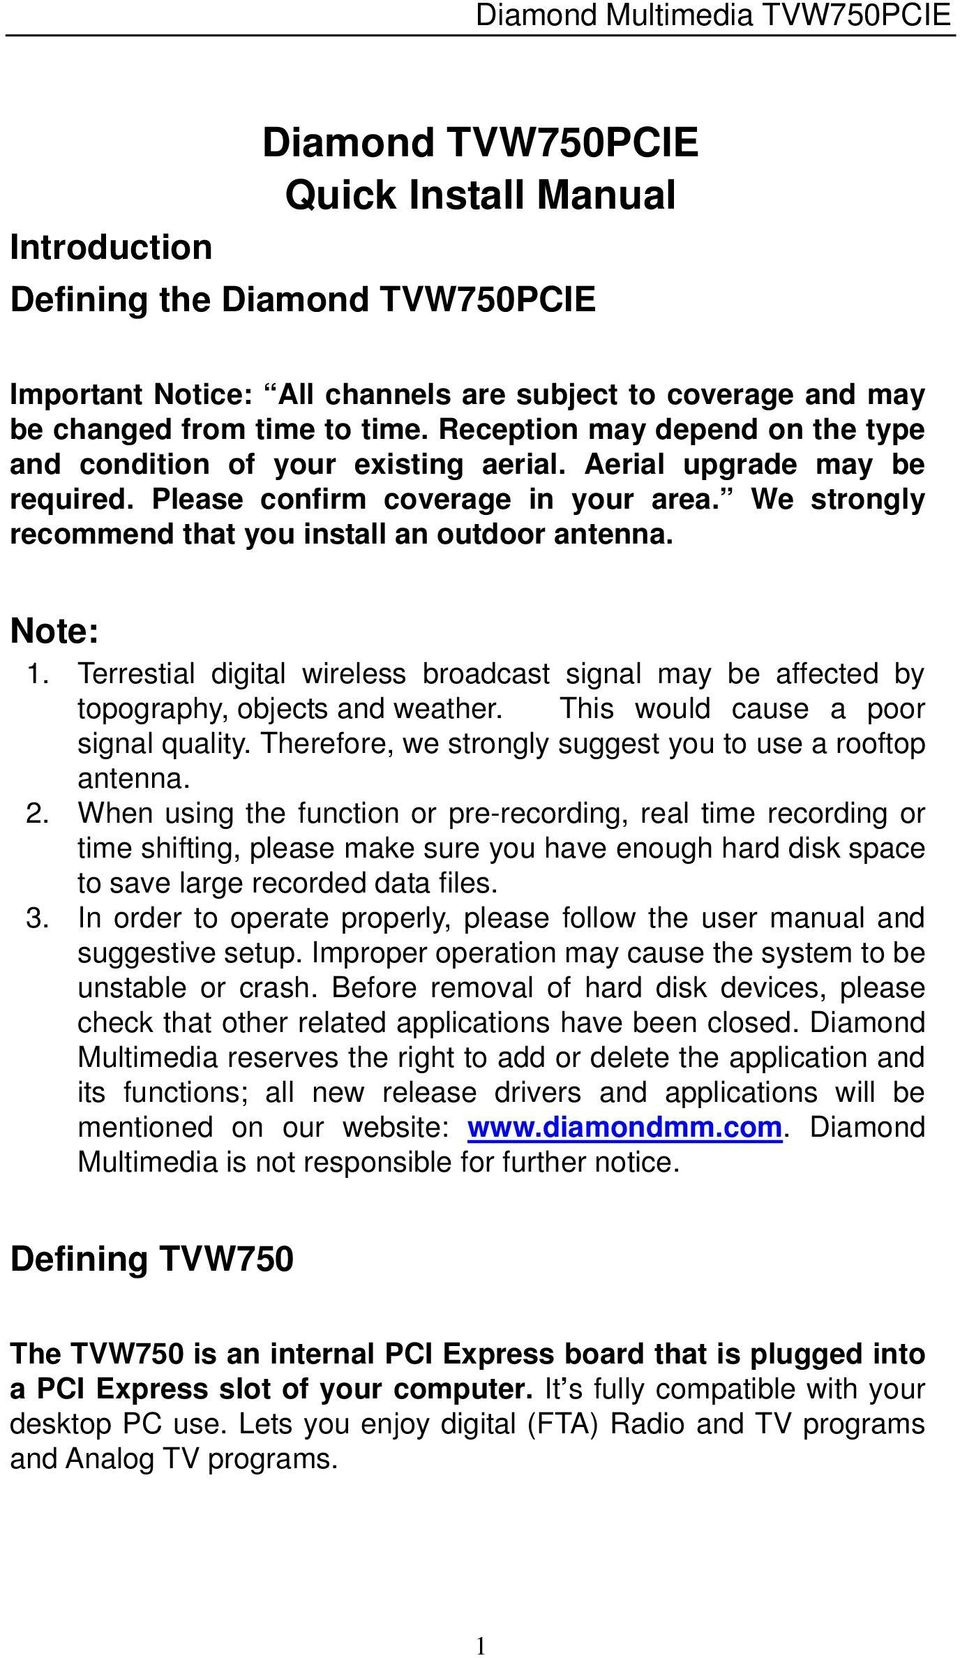 Note: 1. Terrestial digital wireless broadcast signal may be affected by topography, objects and weather. This would cause a poor signal quality.